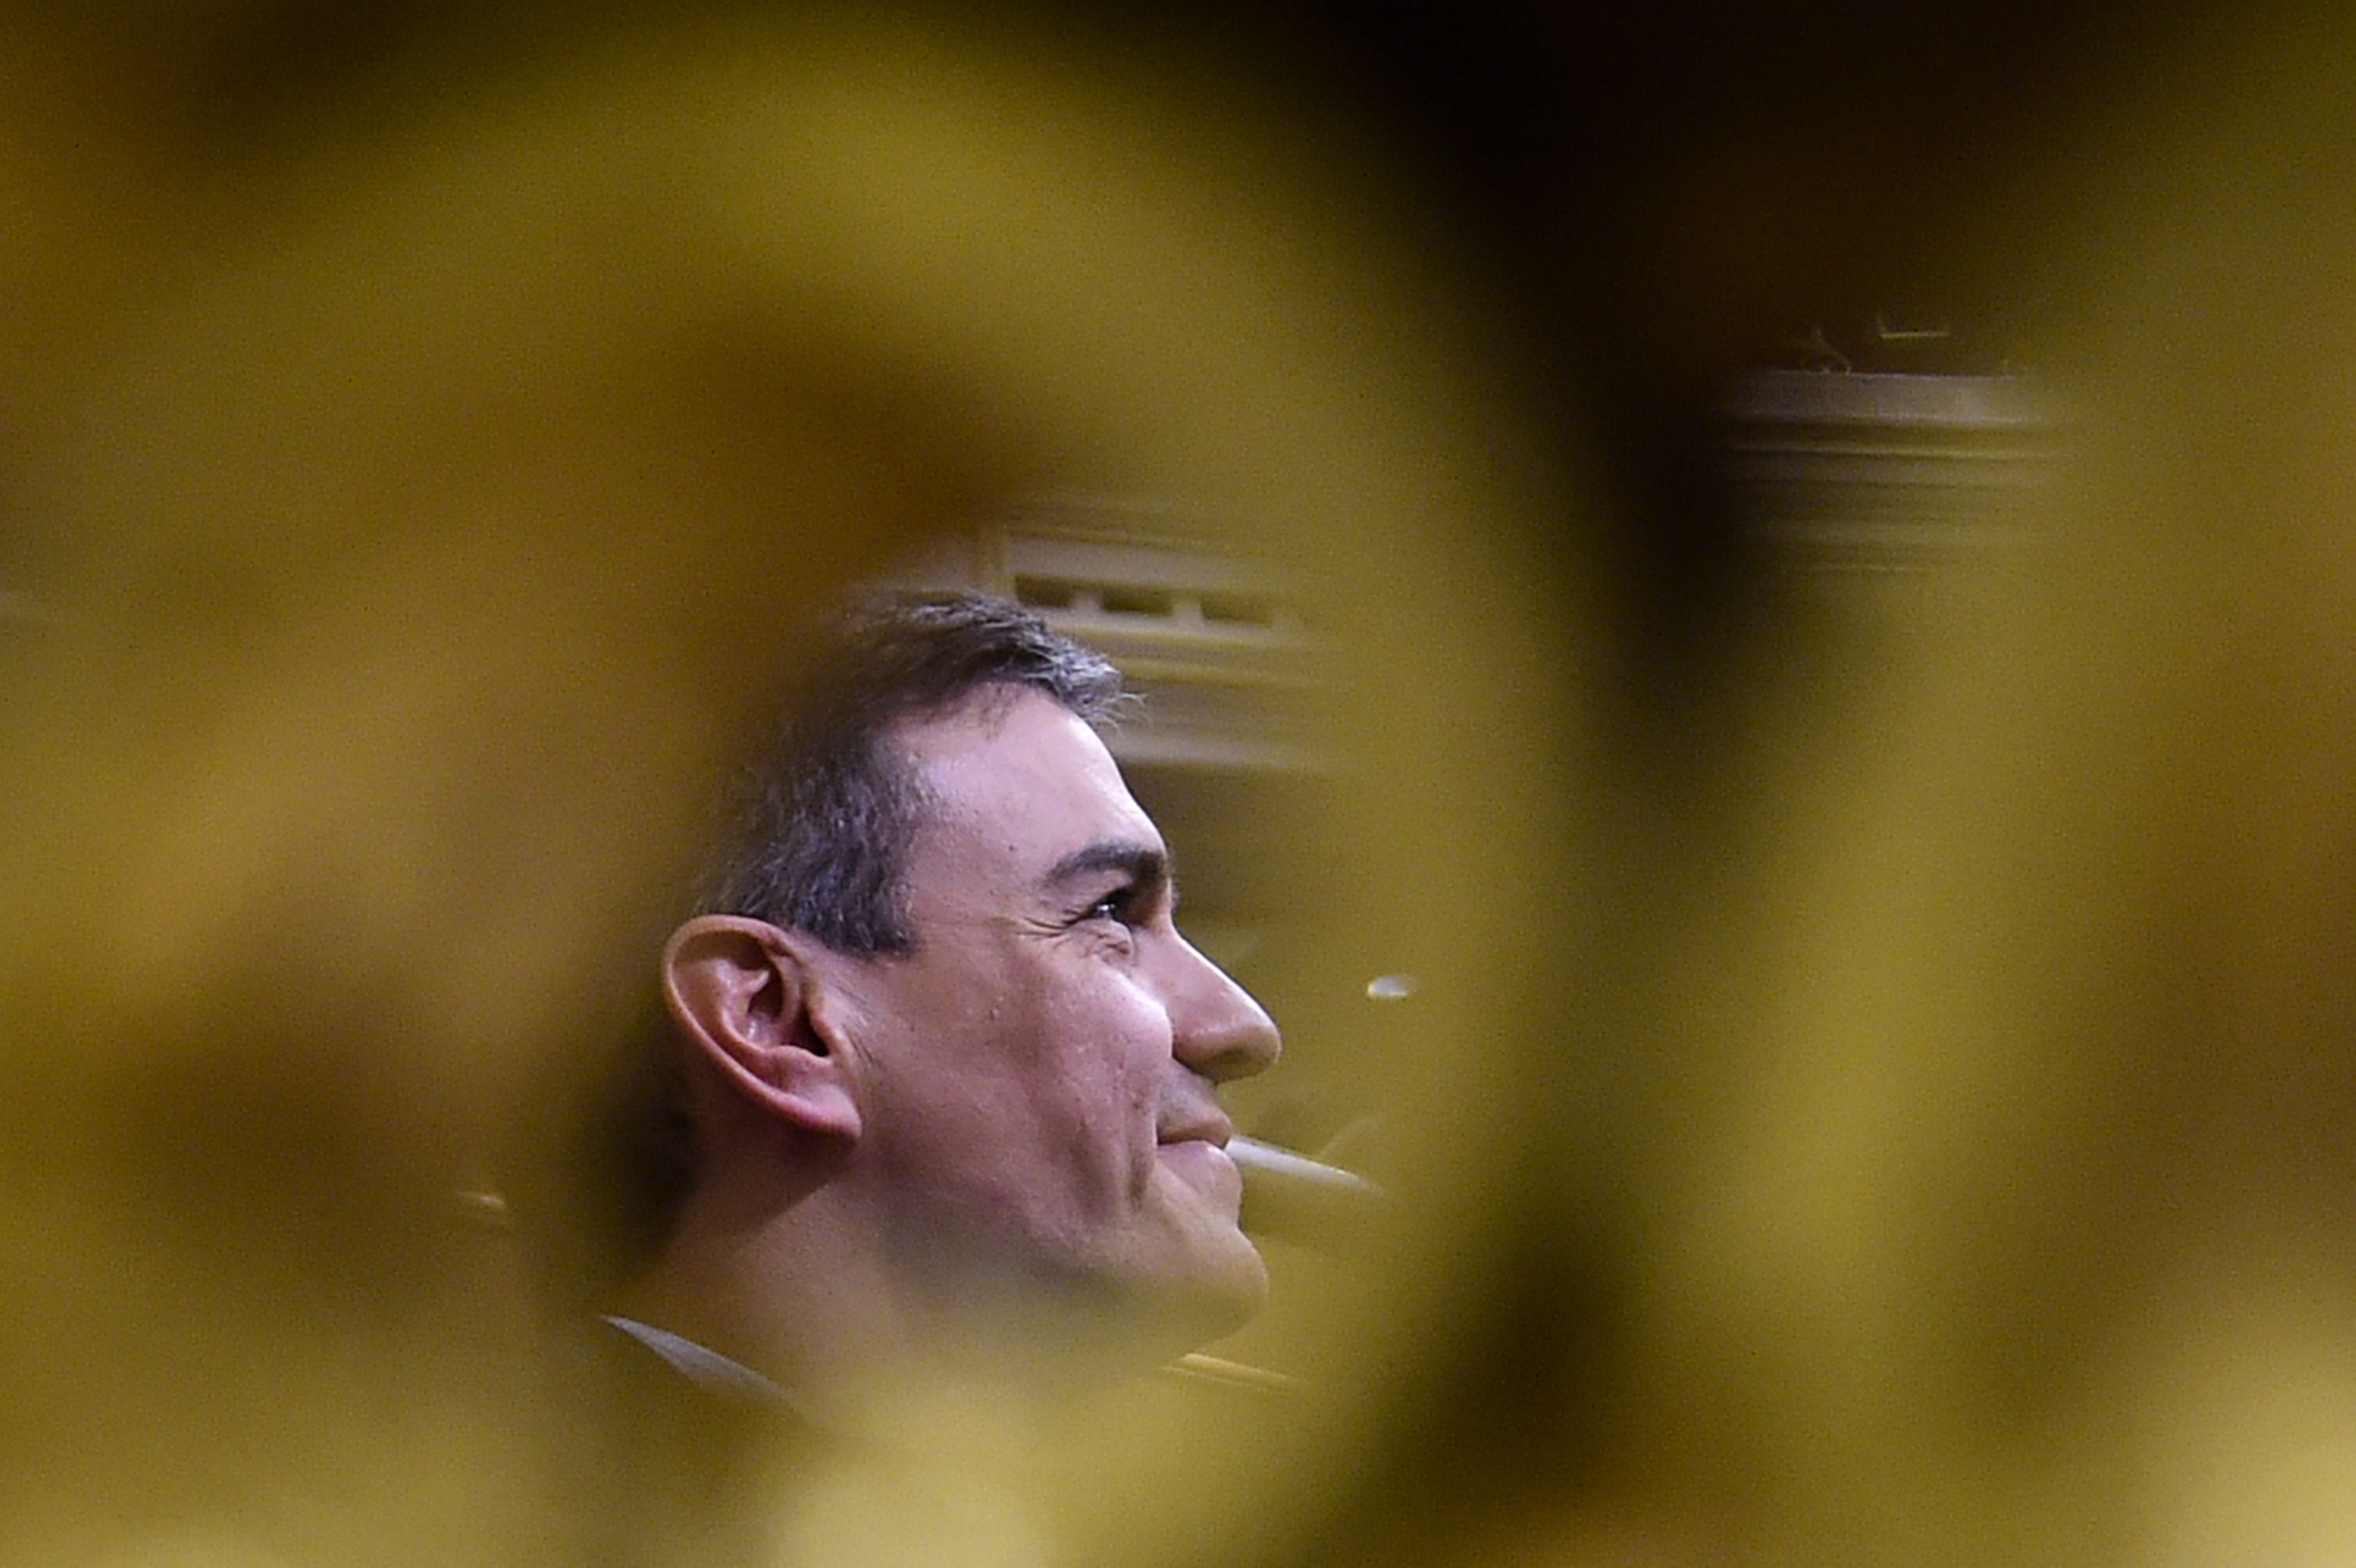 TOPSHOT - Leader of the Spanish Socialist Party PSOE, Pedro Sanchez attends a debate on a no-confidence motion at the Lower House of the Spanish Parliament in Madrid on June 01, 2018. - Bar any last-minute u-turn, an absolute majority of lawmakers as varied as Catalan separatists and Basque nationalists will vote the no-confidence motion filed last week by the Socialists over a string of corruption woes hitting Spanish Prime Minister Mariano Rajoy's conservative Popular Party (PP). (Photo by PIERRE-PHILIPPE MARCOU / AFP)        (Photo credit should read PIERRE-PHILIPPE MARCOU/AFP/Getty Images)